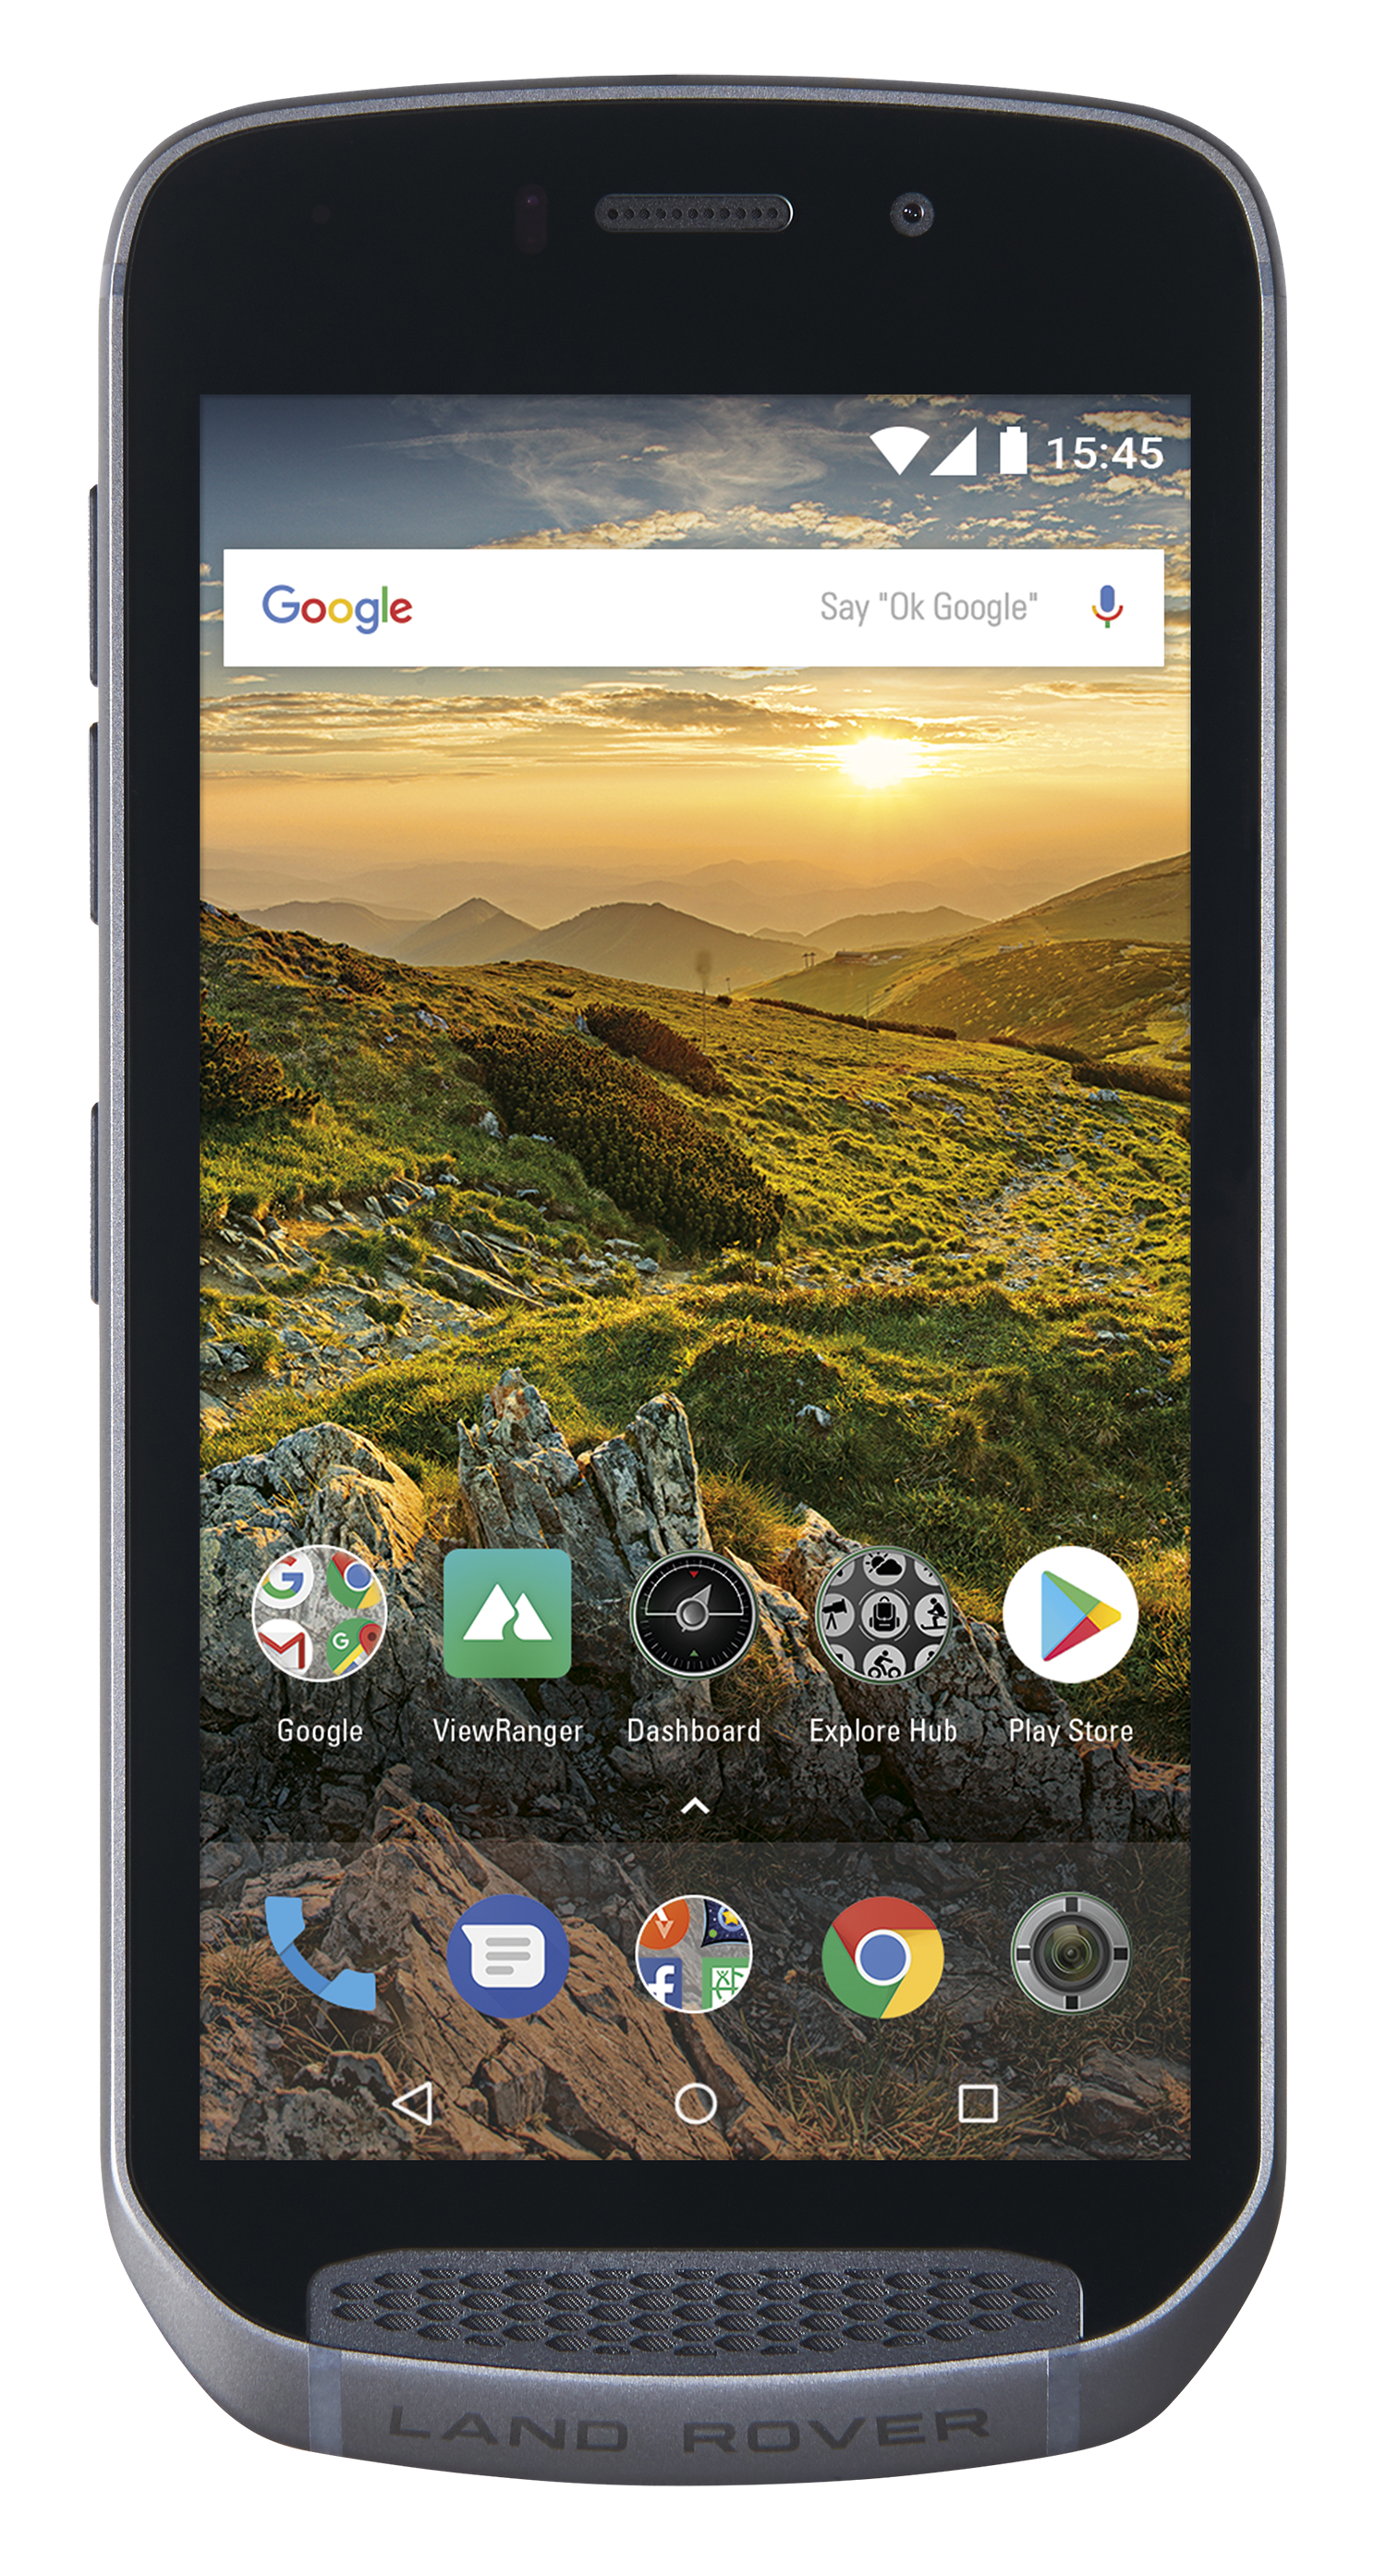 Home screen of Land Rover Explore phone